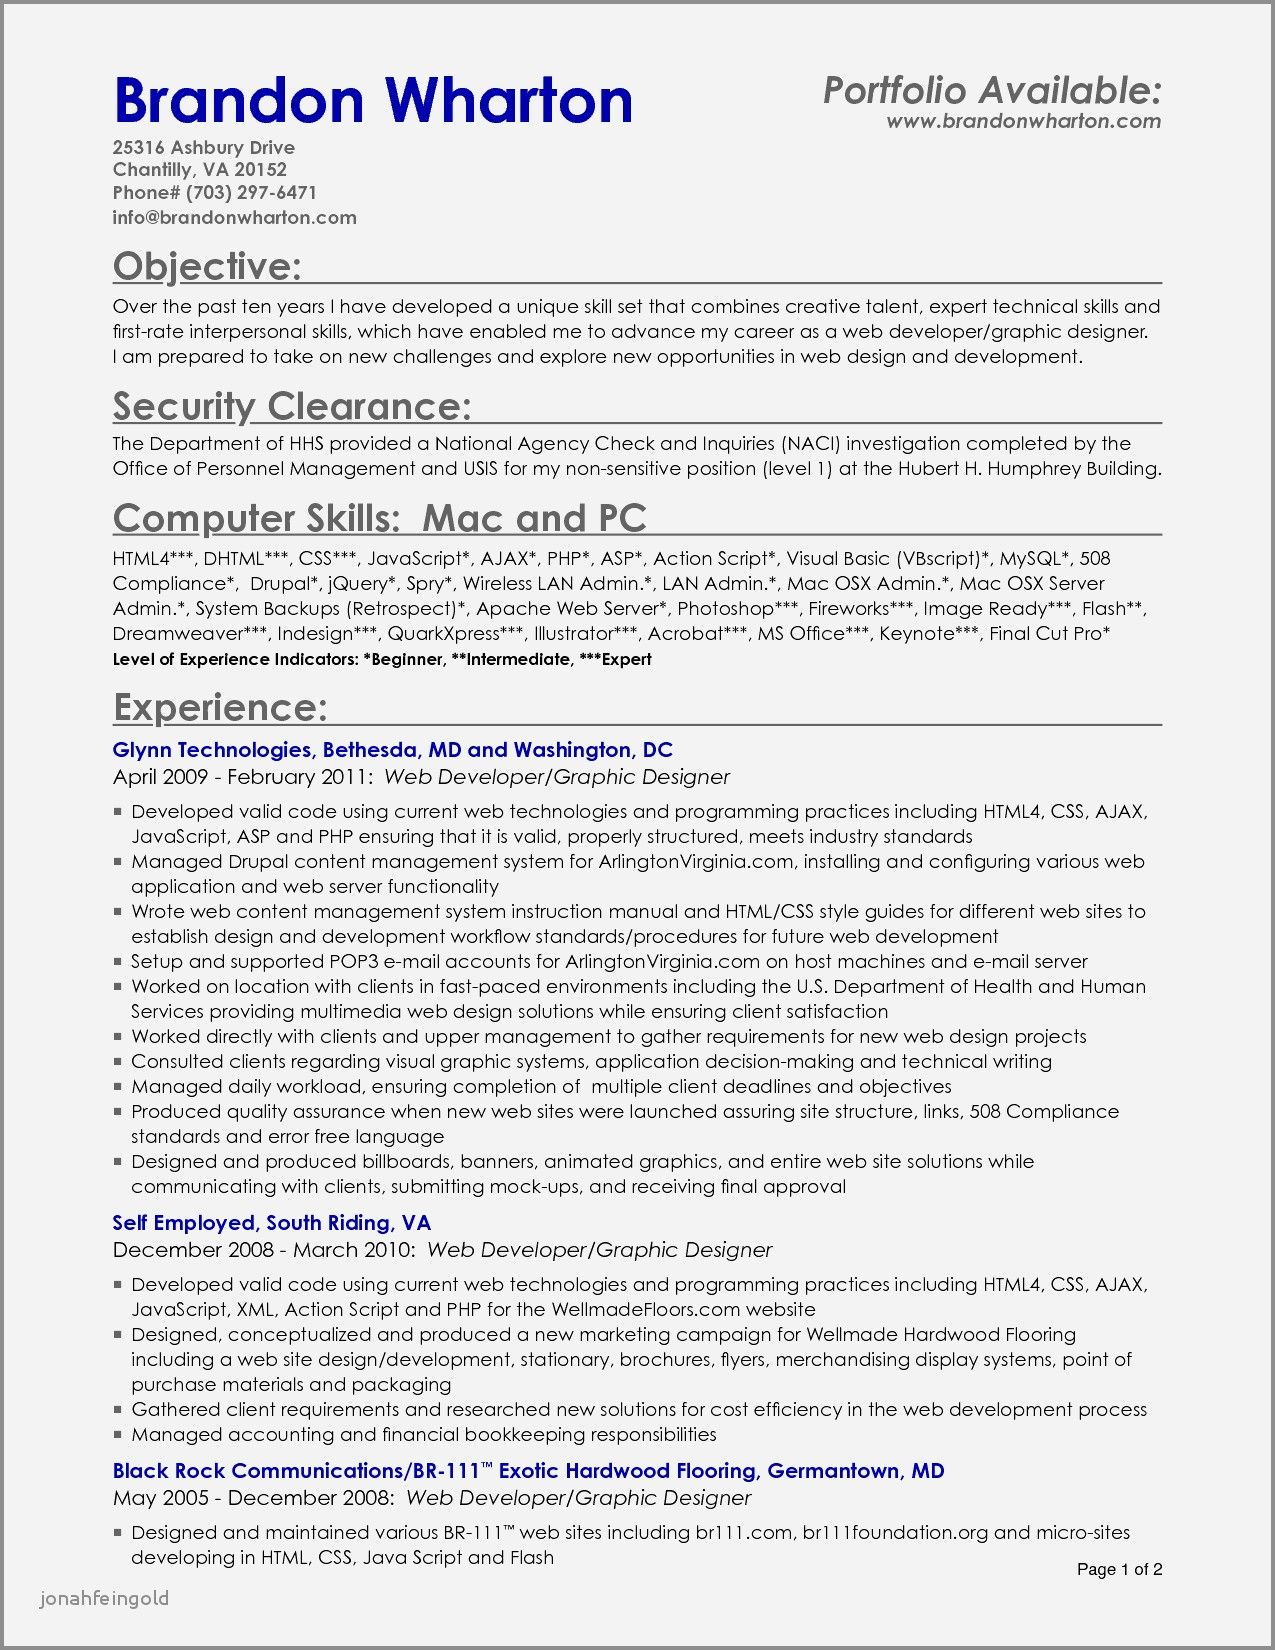 65 beautiful collection of resume example with ojt experience